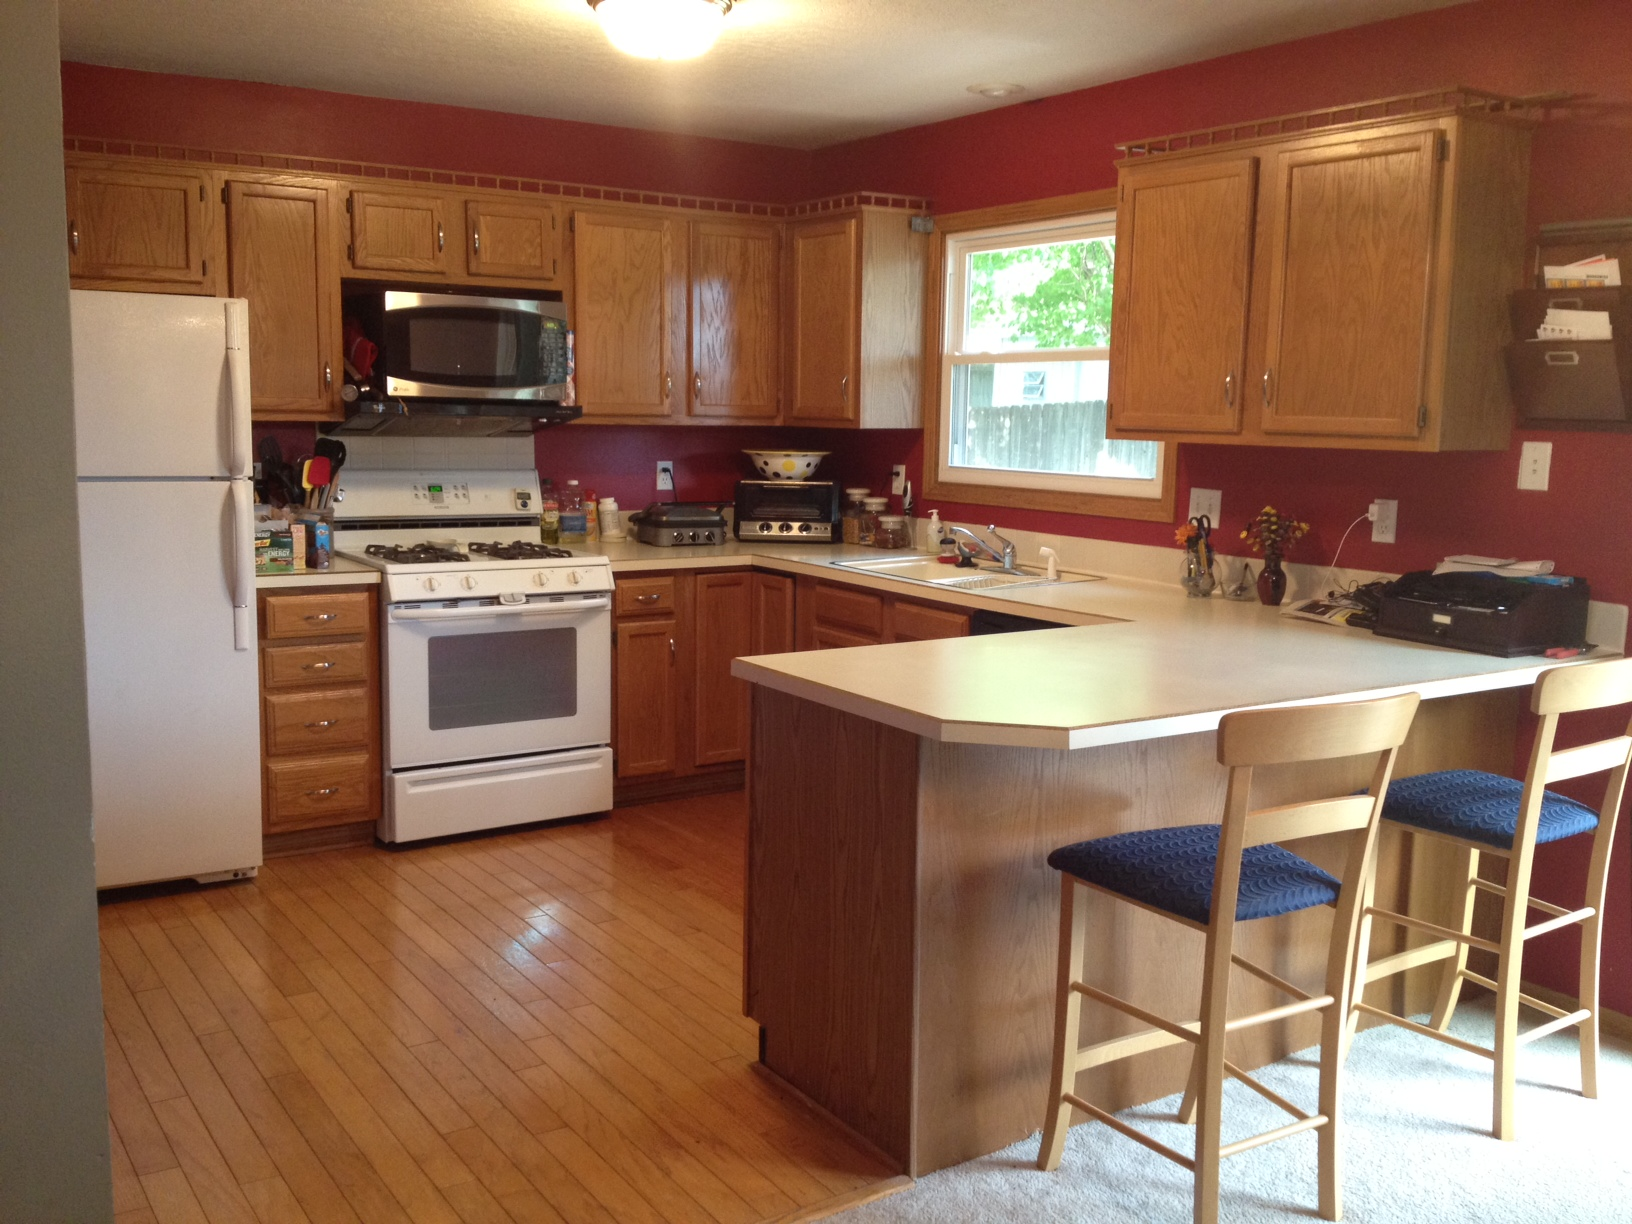 Kitchens With Brown Cabinets. Painting Kitchen Cabinets   Before Picture  Kitchens With Brown 6